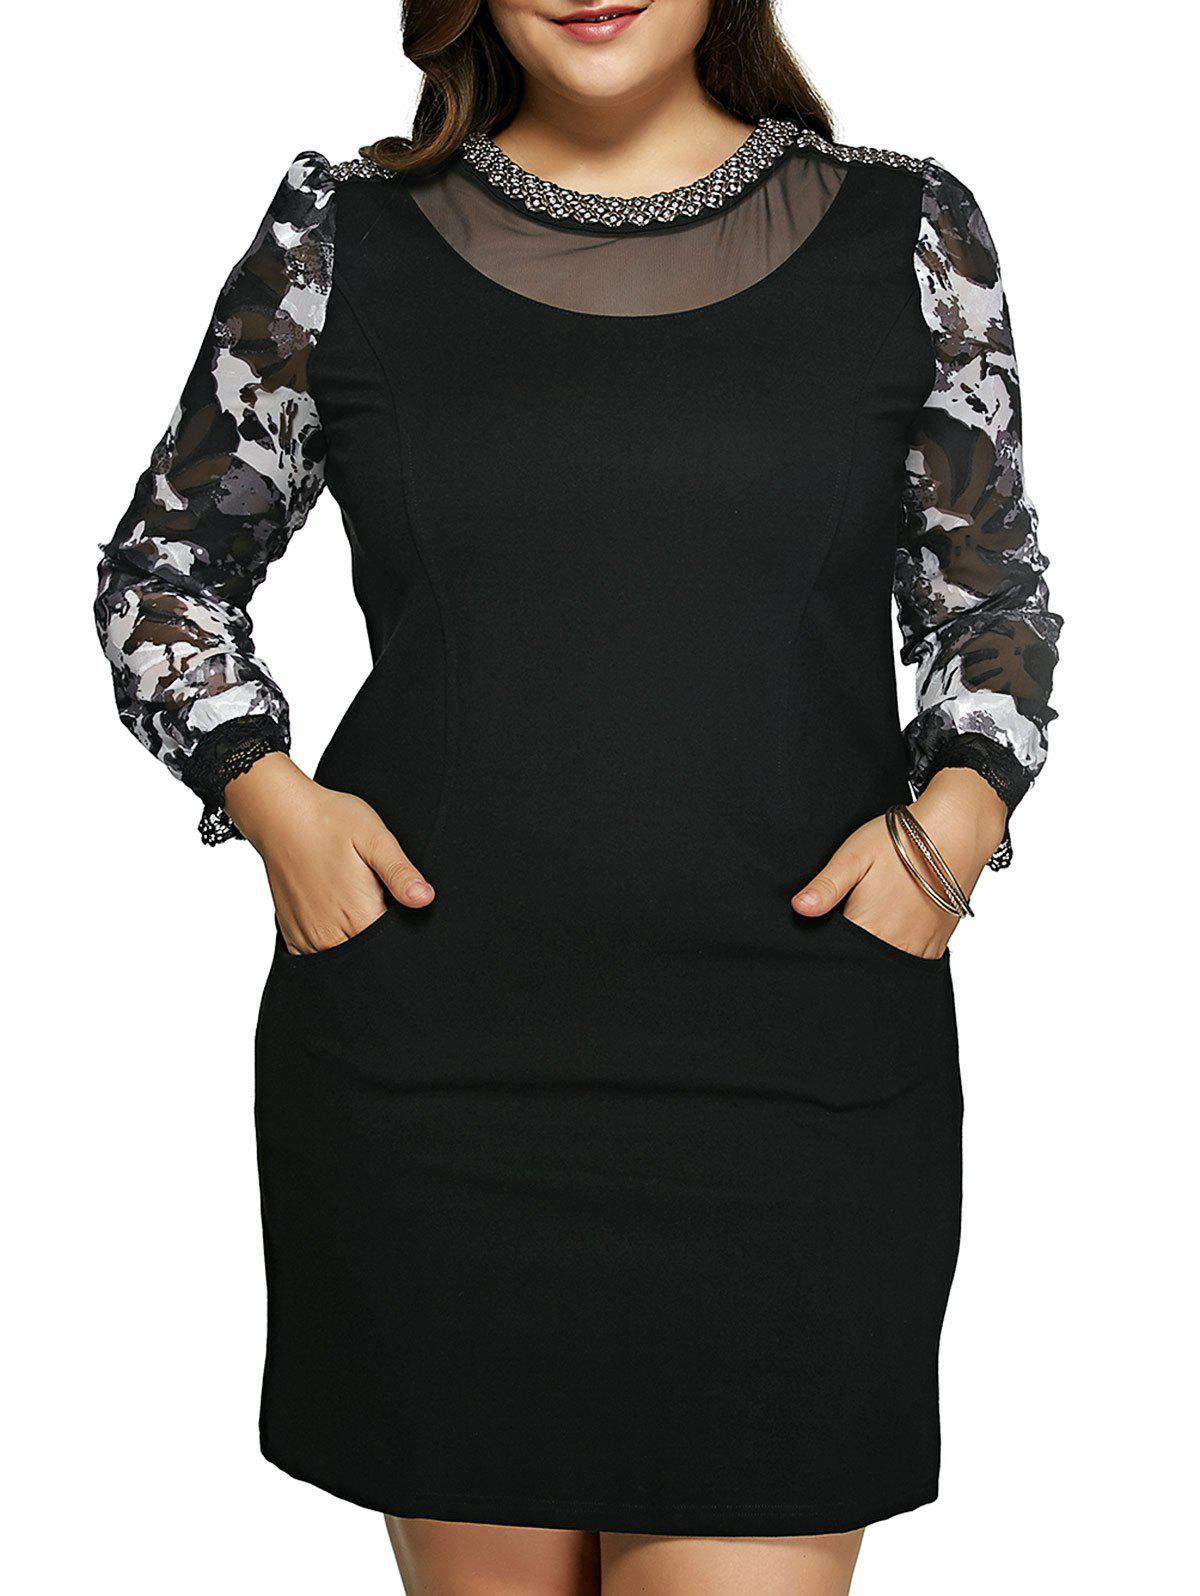 Plus Size Elegant Rhinestone Embellished Dress - BLACK 6XL